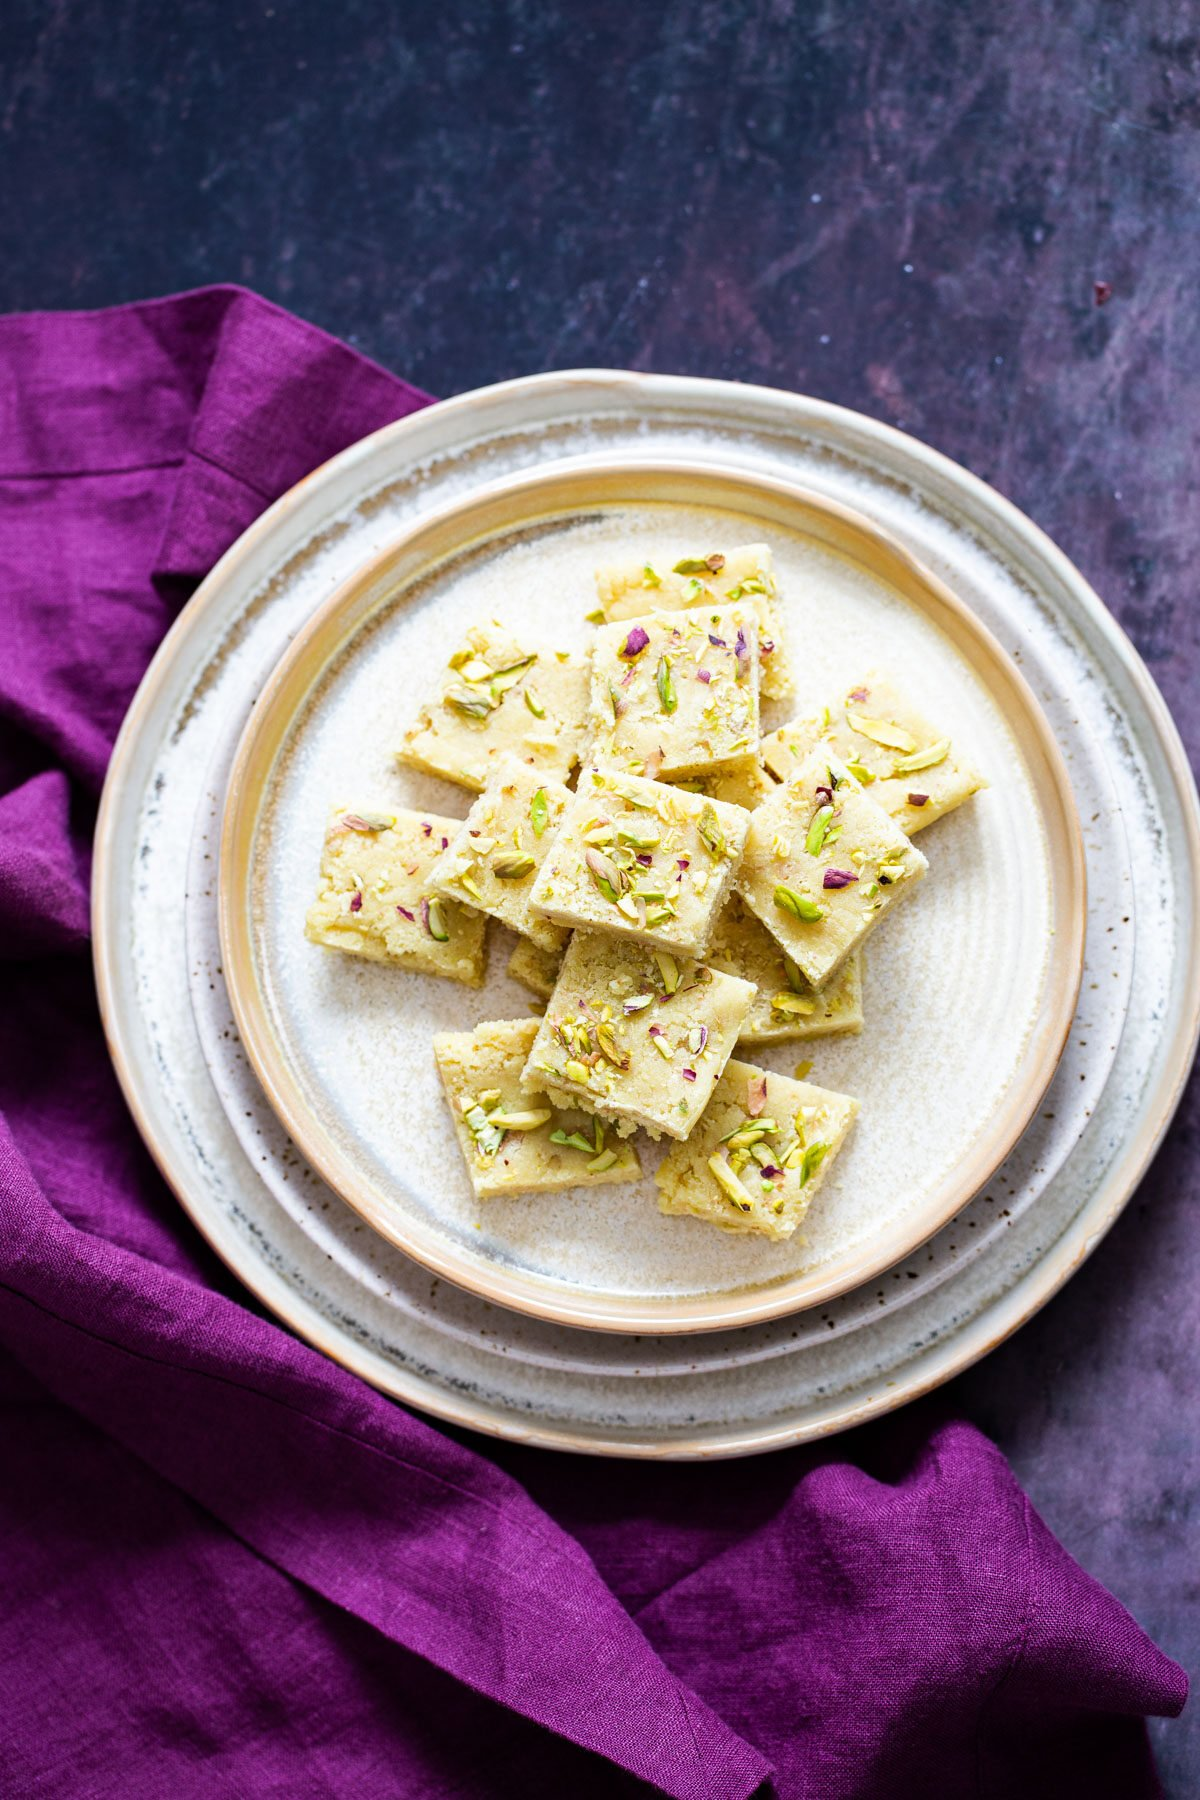 vegan almond burfi topped with pistachios and almonds